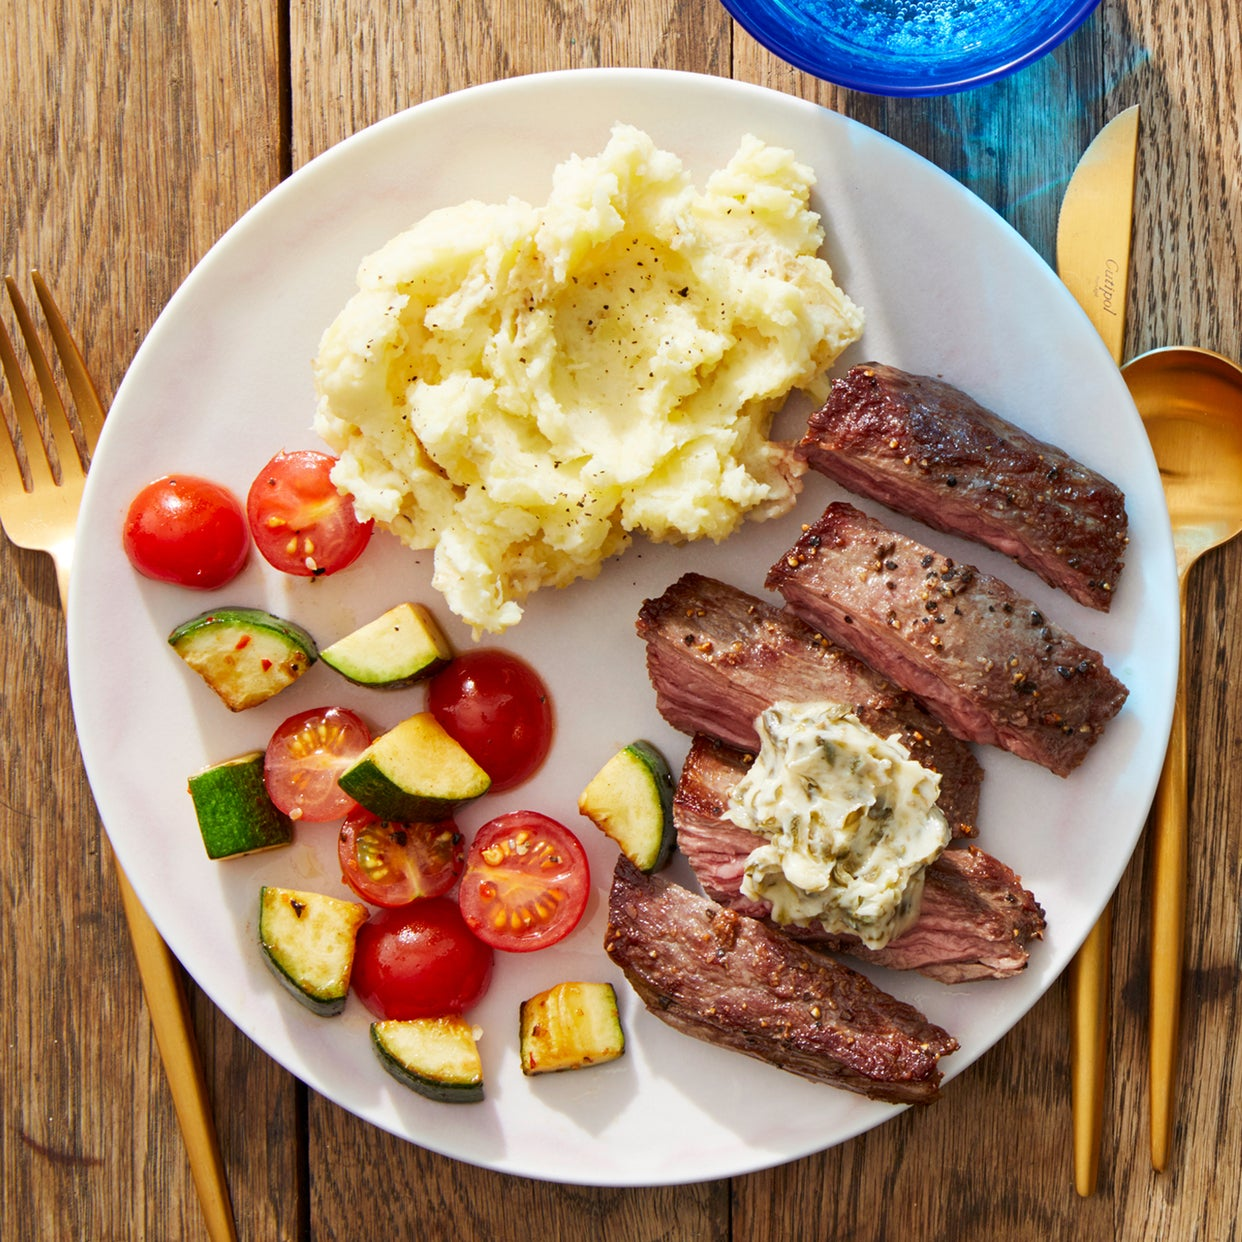 Seared Steak & Garlic-Mashed Potatoes with Summer Vegetables